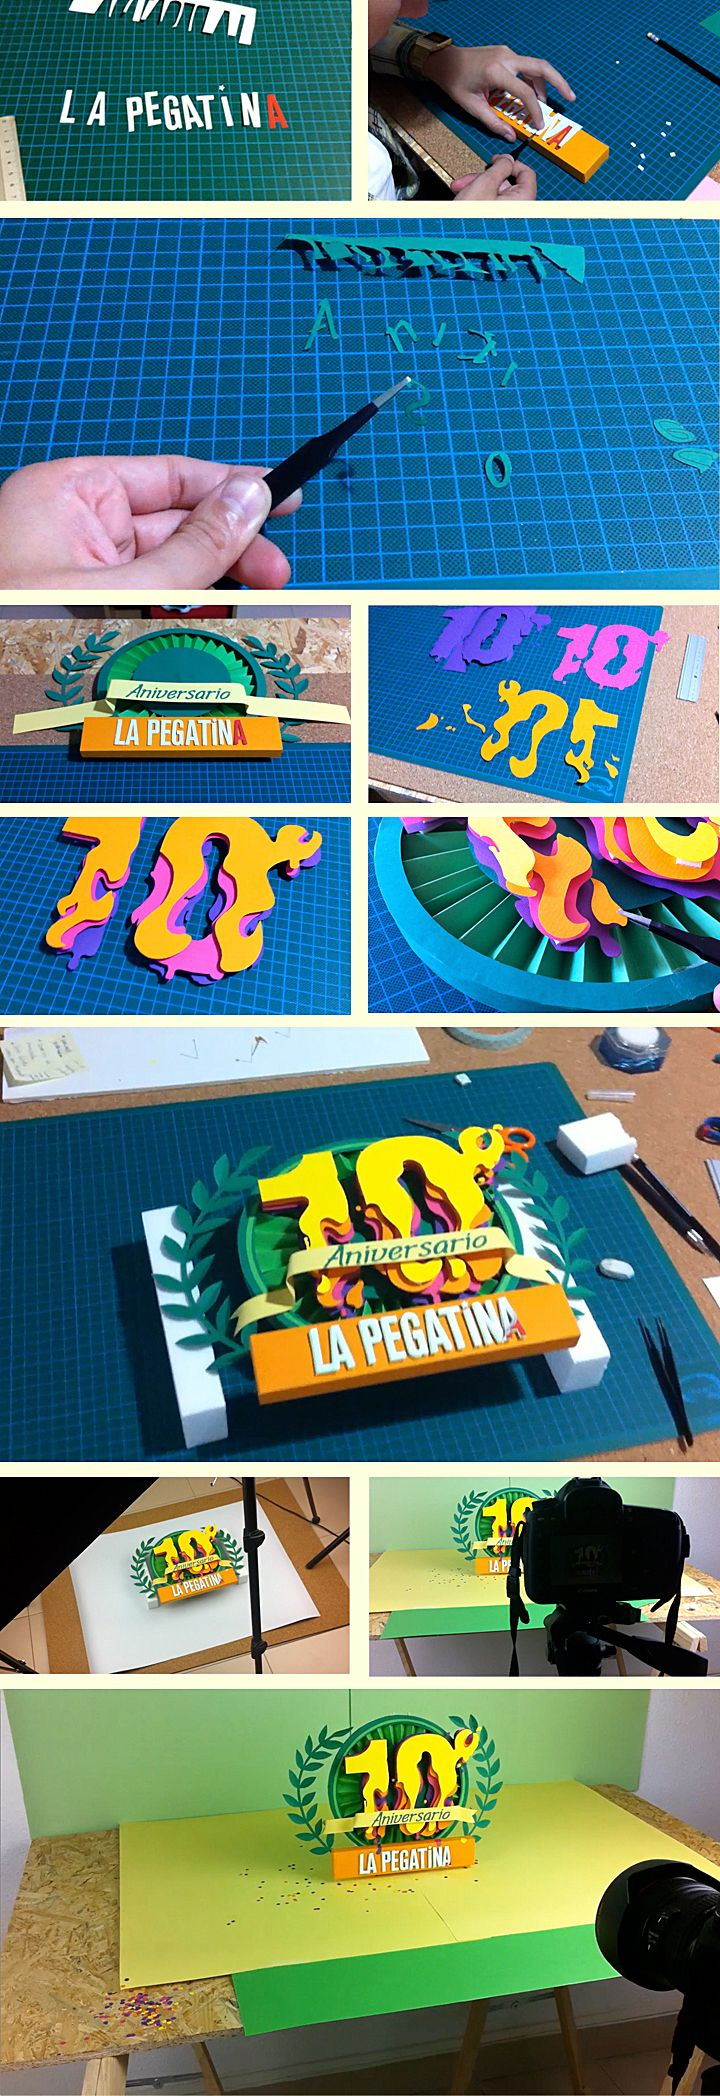 """This year the spanish rumba fusion band """"La Pegatina"""" are celebrating their 10th aniversary, I was commisioned to created a logo on paper for one of the t-shirts for their aniversary."""